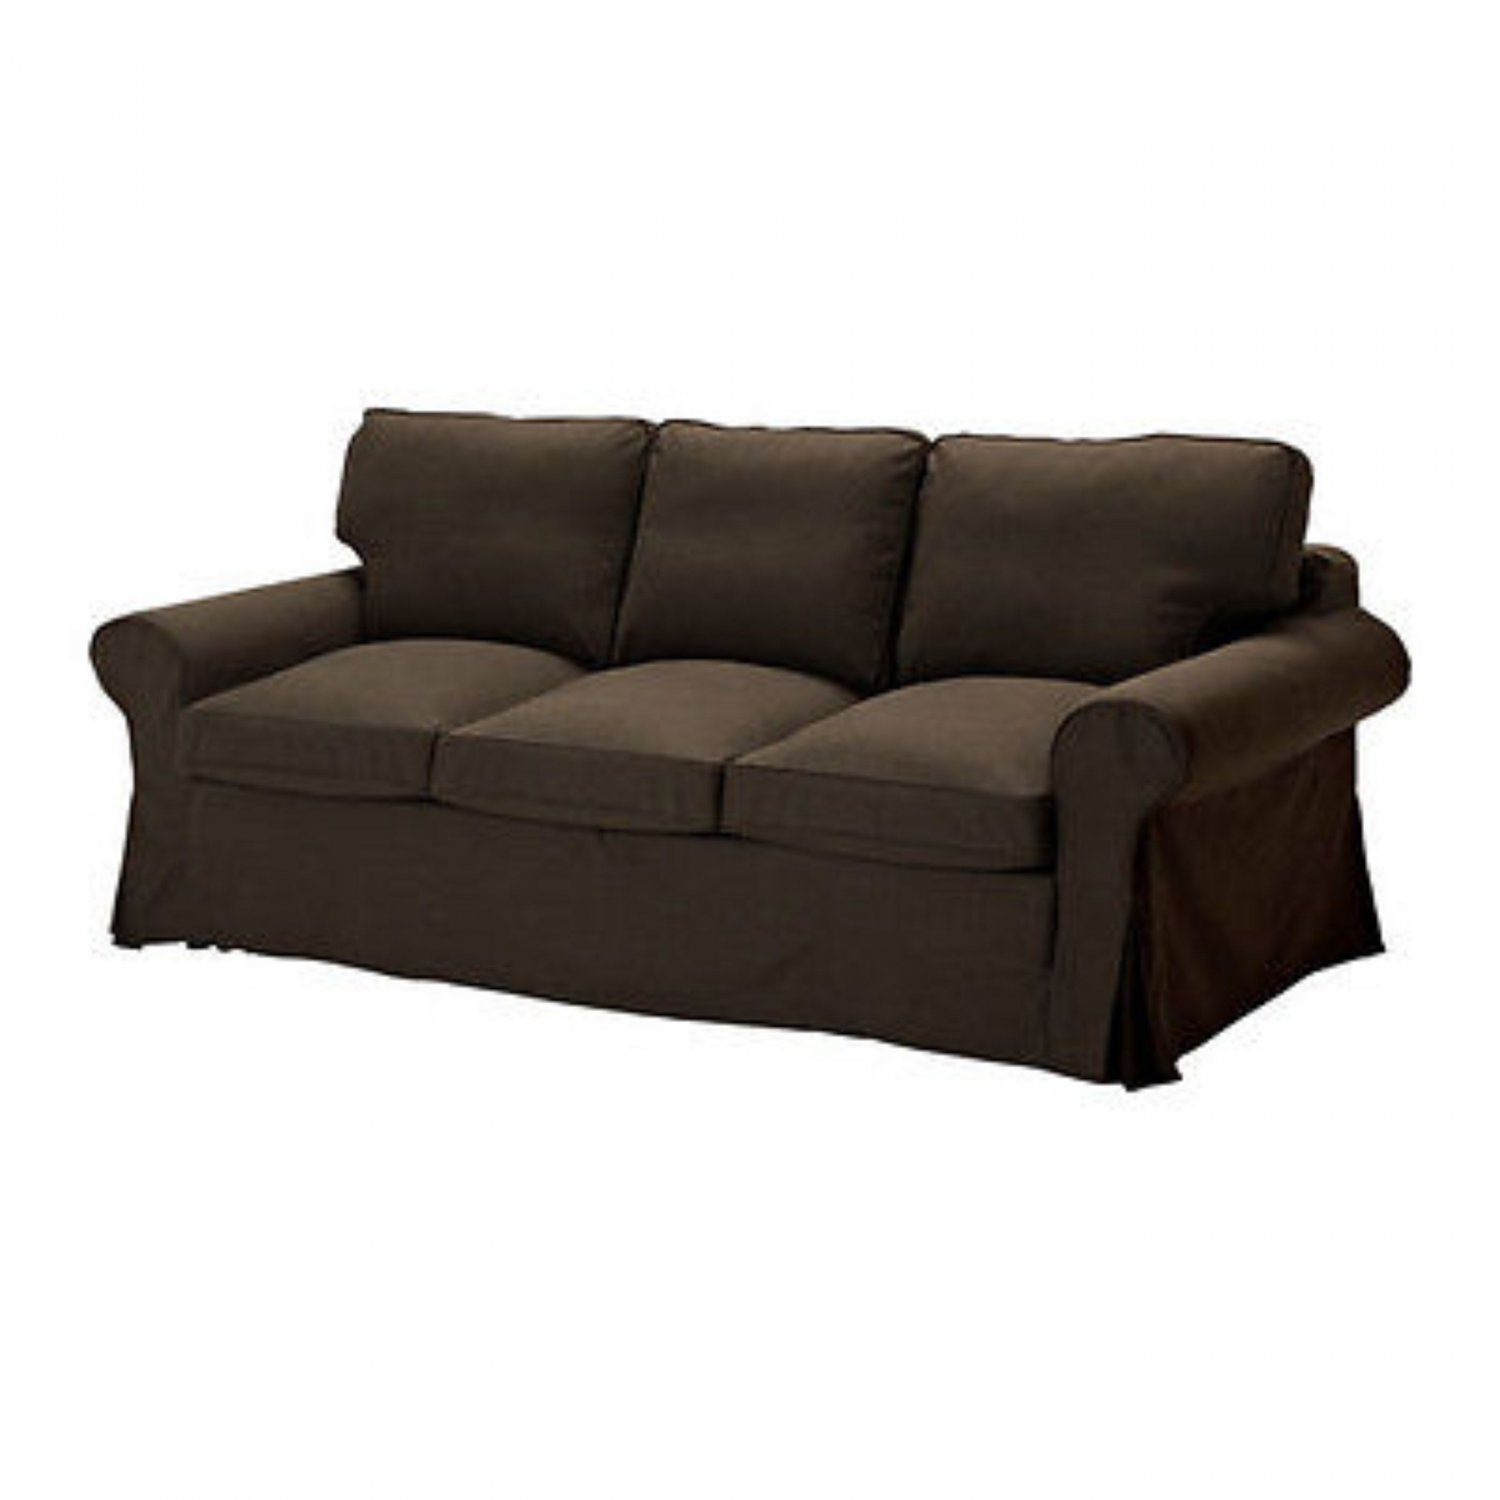 ikea ektorp pixbo 3 seater sofa bed svanby brown. Black Bedroom Furniture Sets. Home Design Ideas